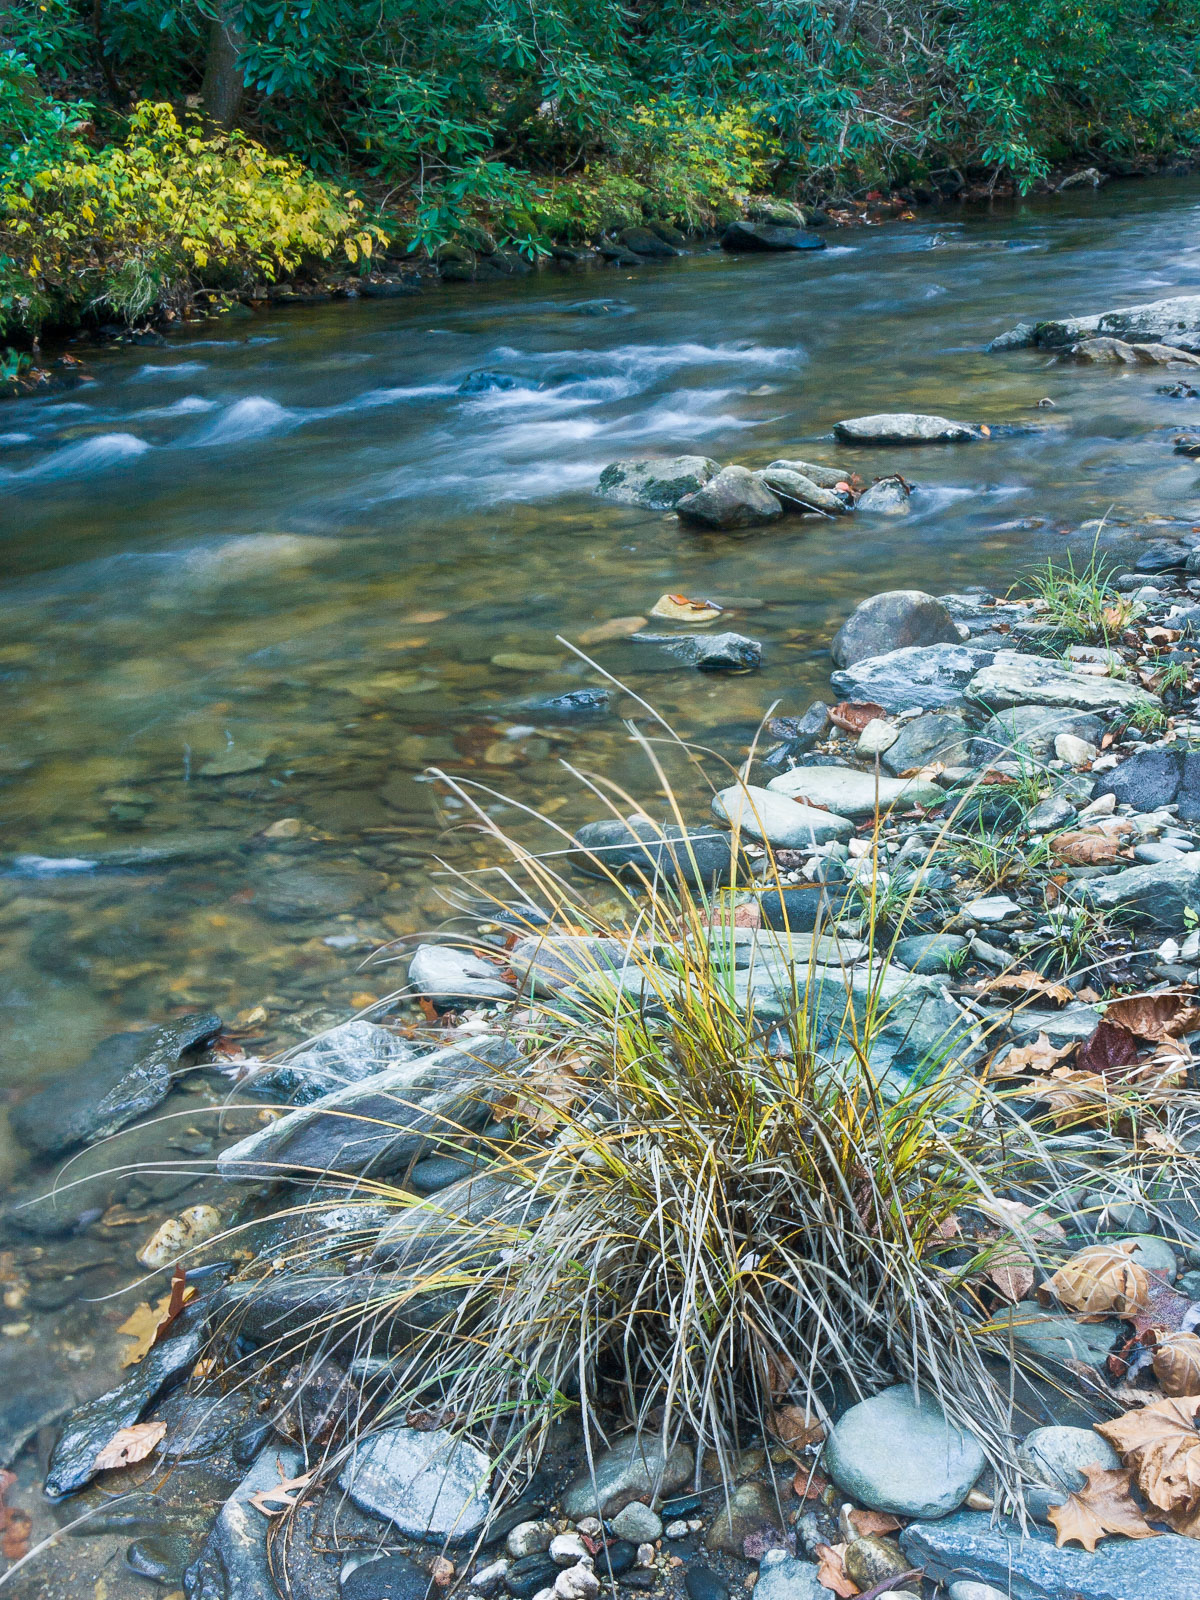 Speaking to the Soul: The Song of the Stream – Episcopal Cafe